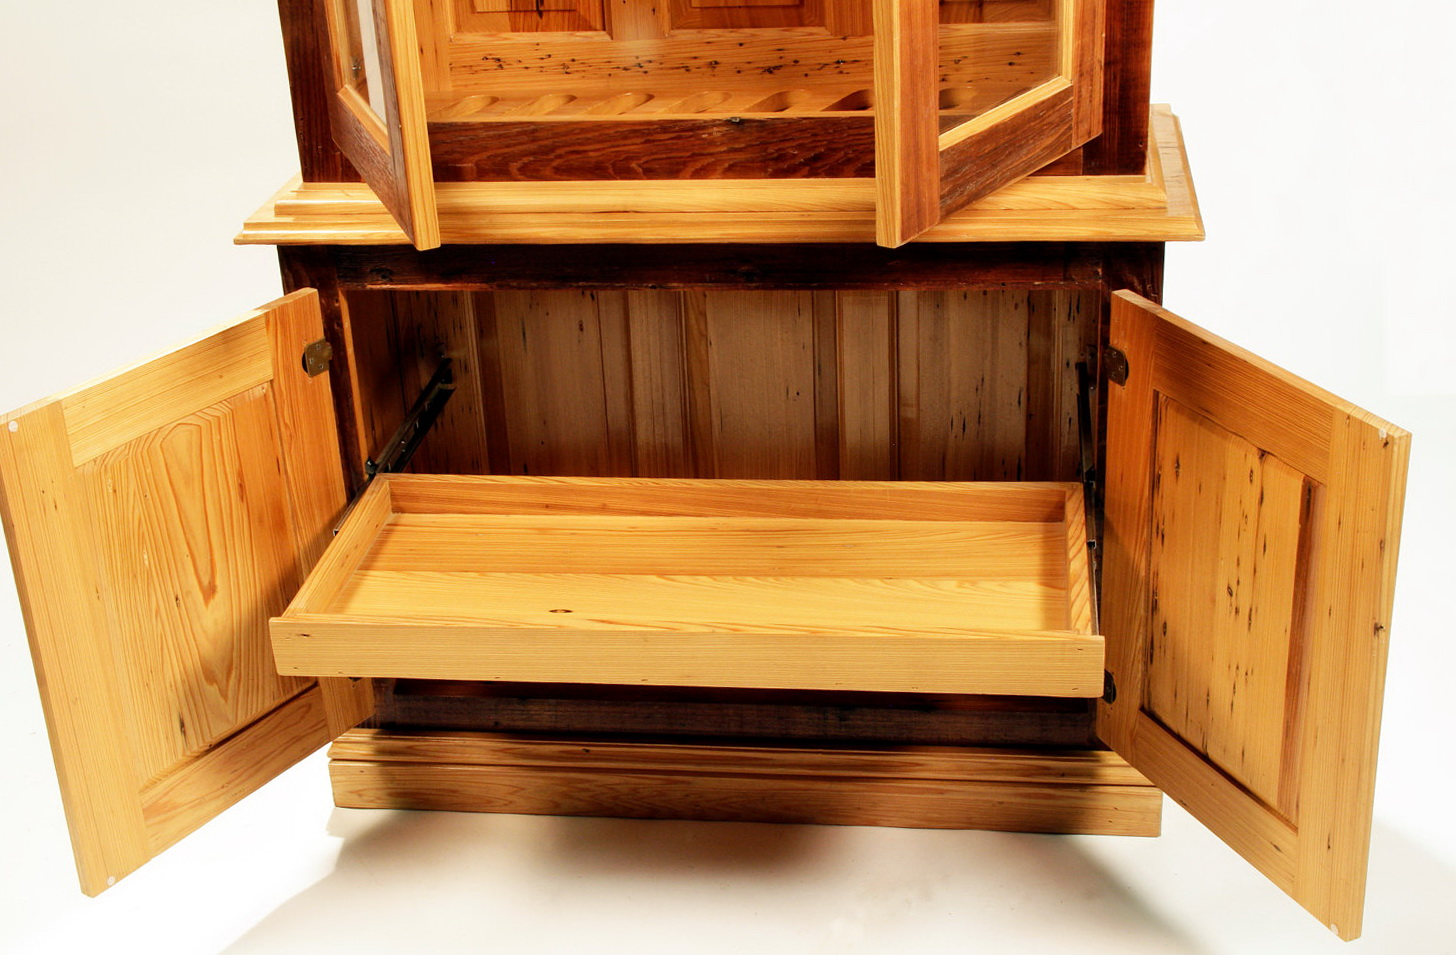 Wooden Gun Cabinet Designs